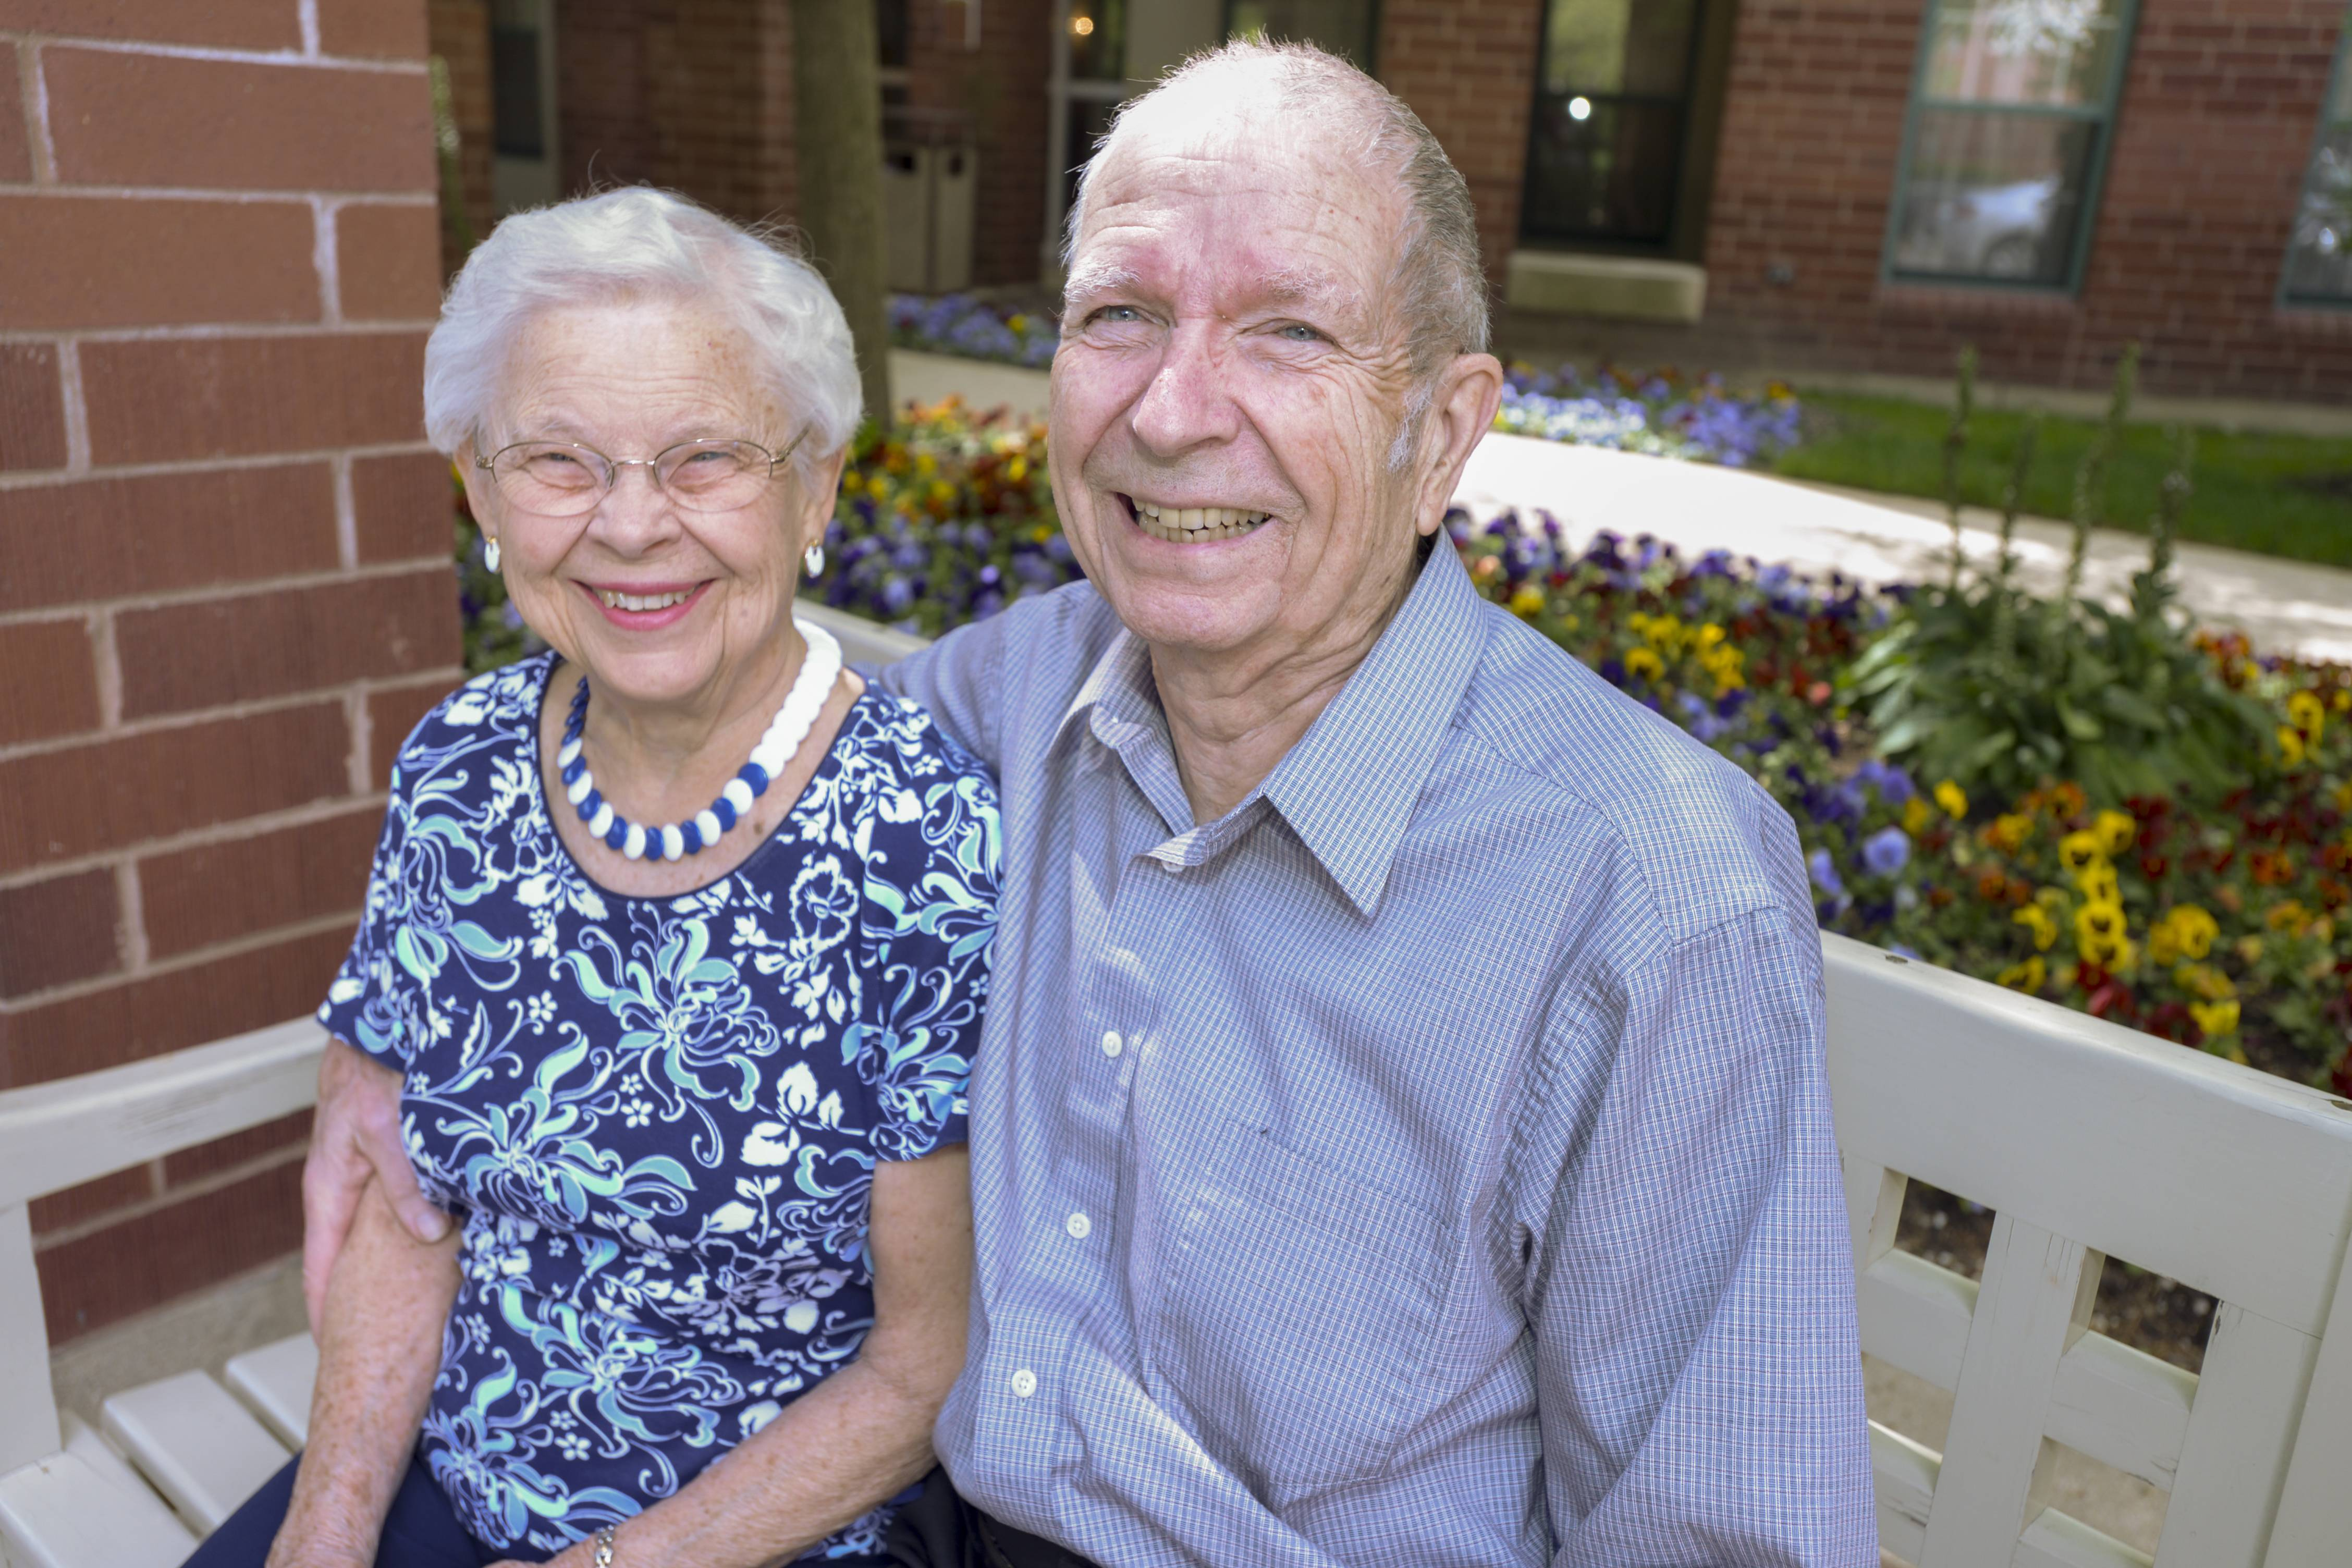 Managing time differently was an adjustment Don Fischer made in retirement. he and his wife Lois stay active by chairing a hospital committee at the Wyndemere senior living community in Wheaton.